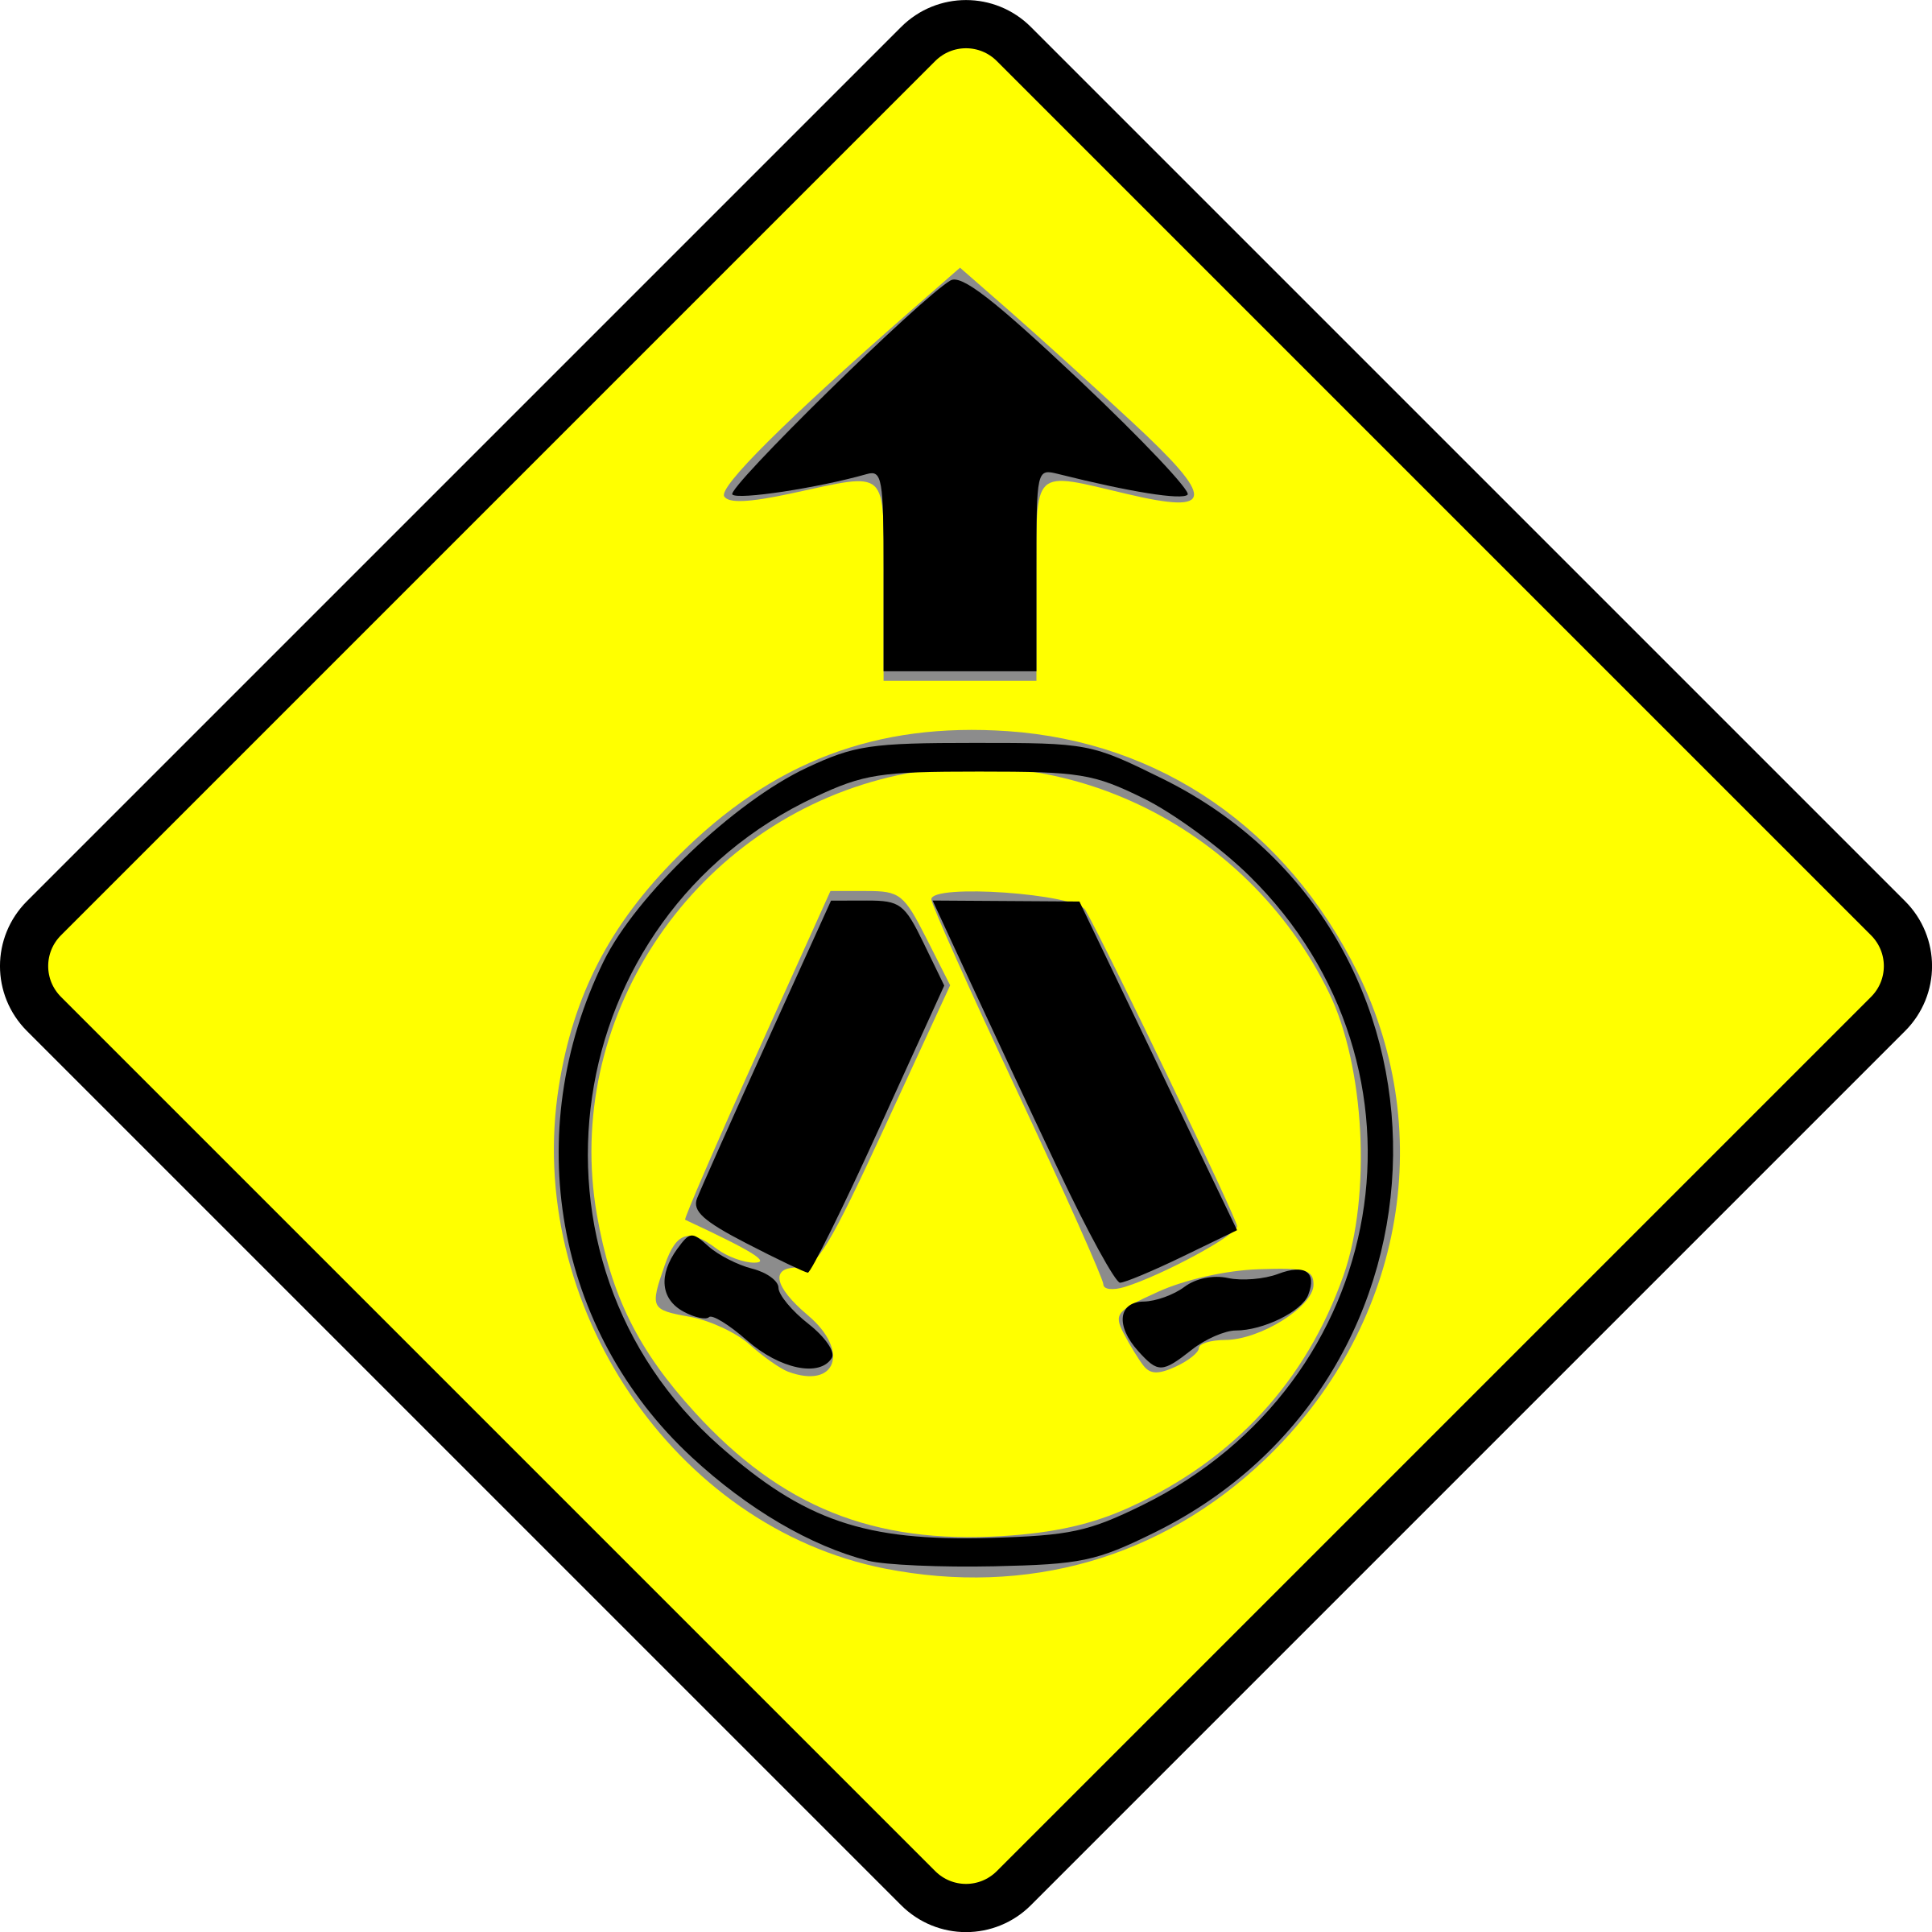 Overhead car clipart black and white download Clipart - caution-pedestrian crossing black and white download